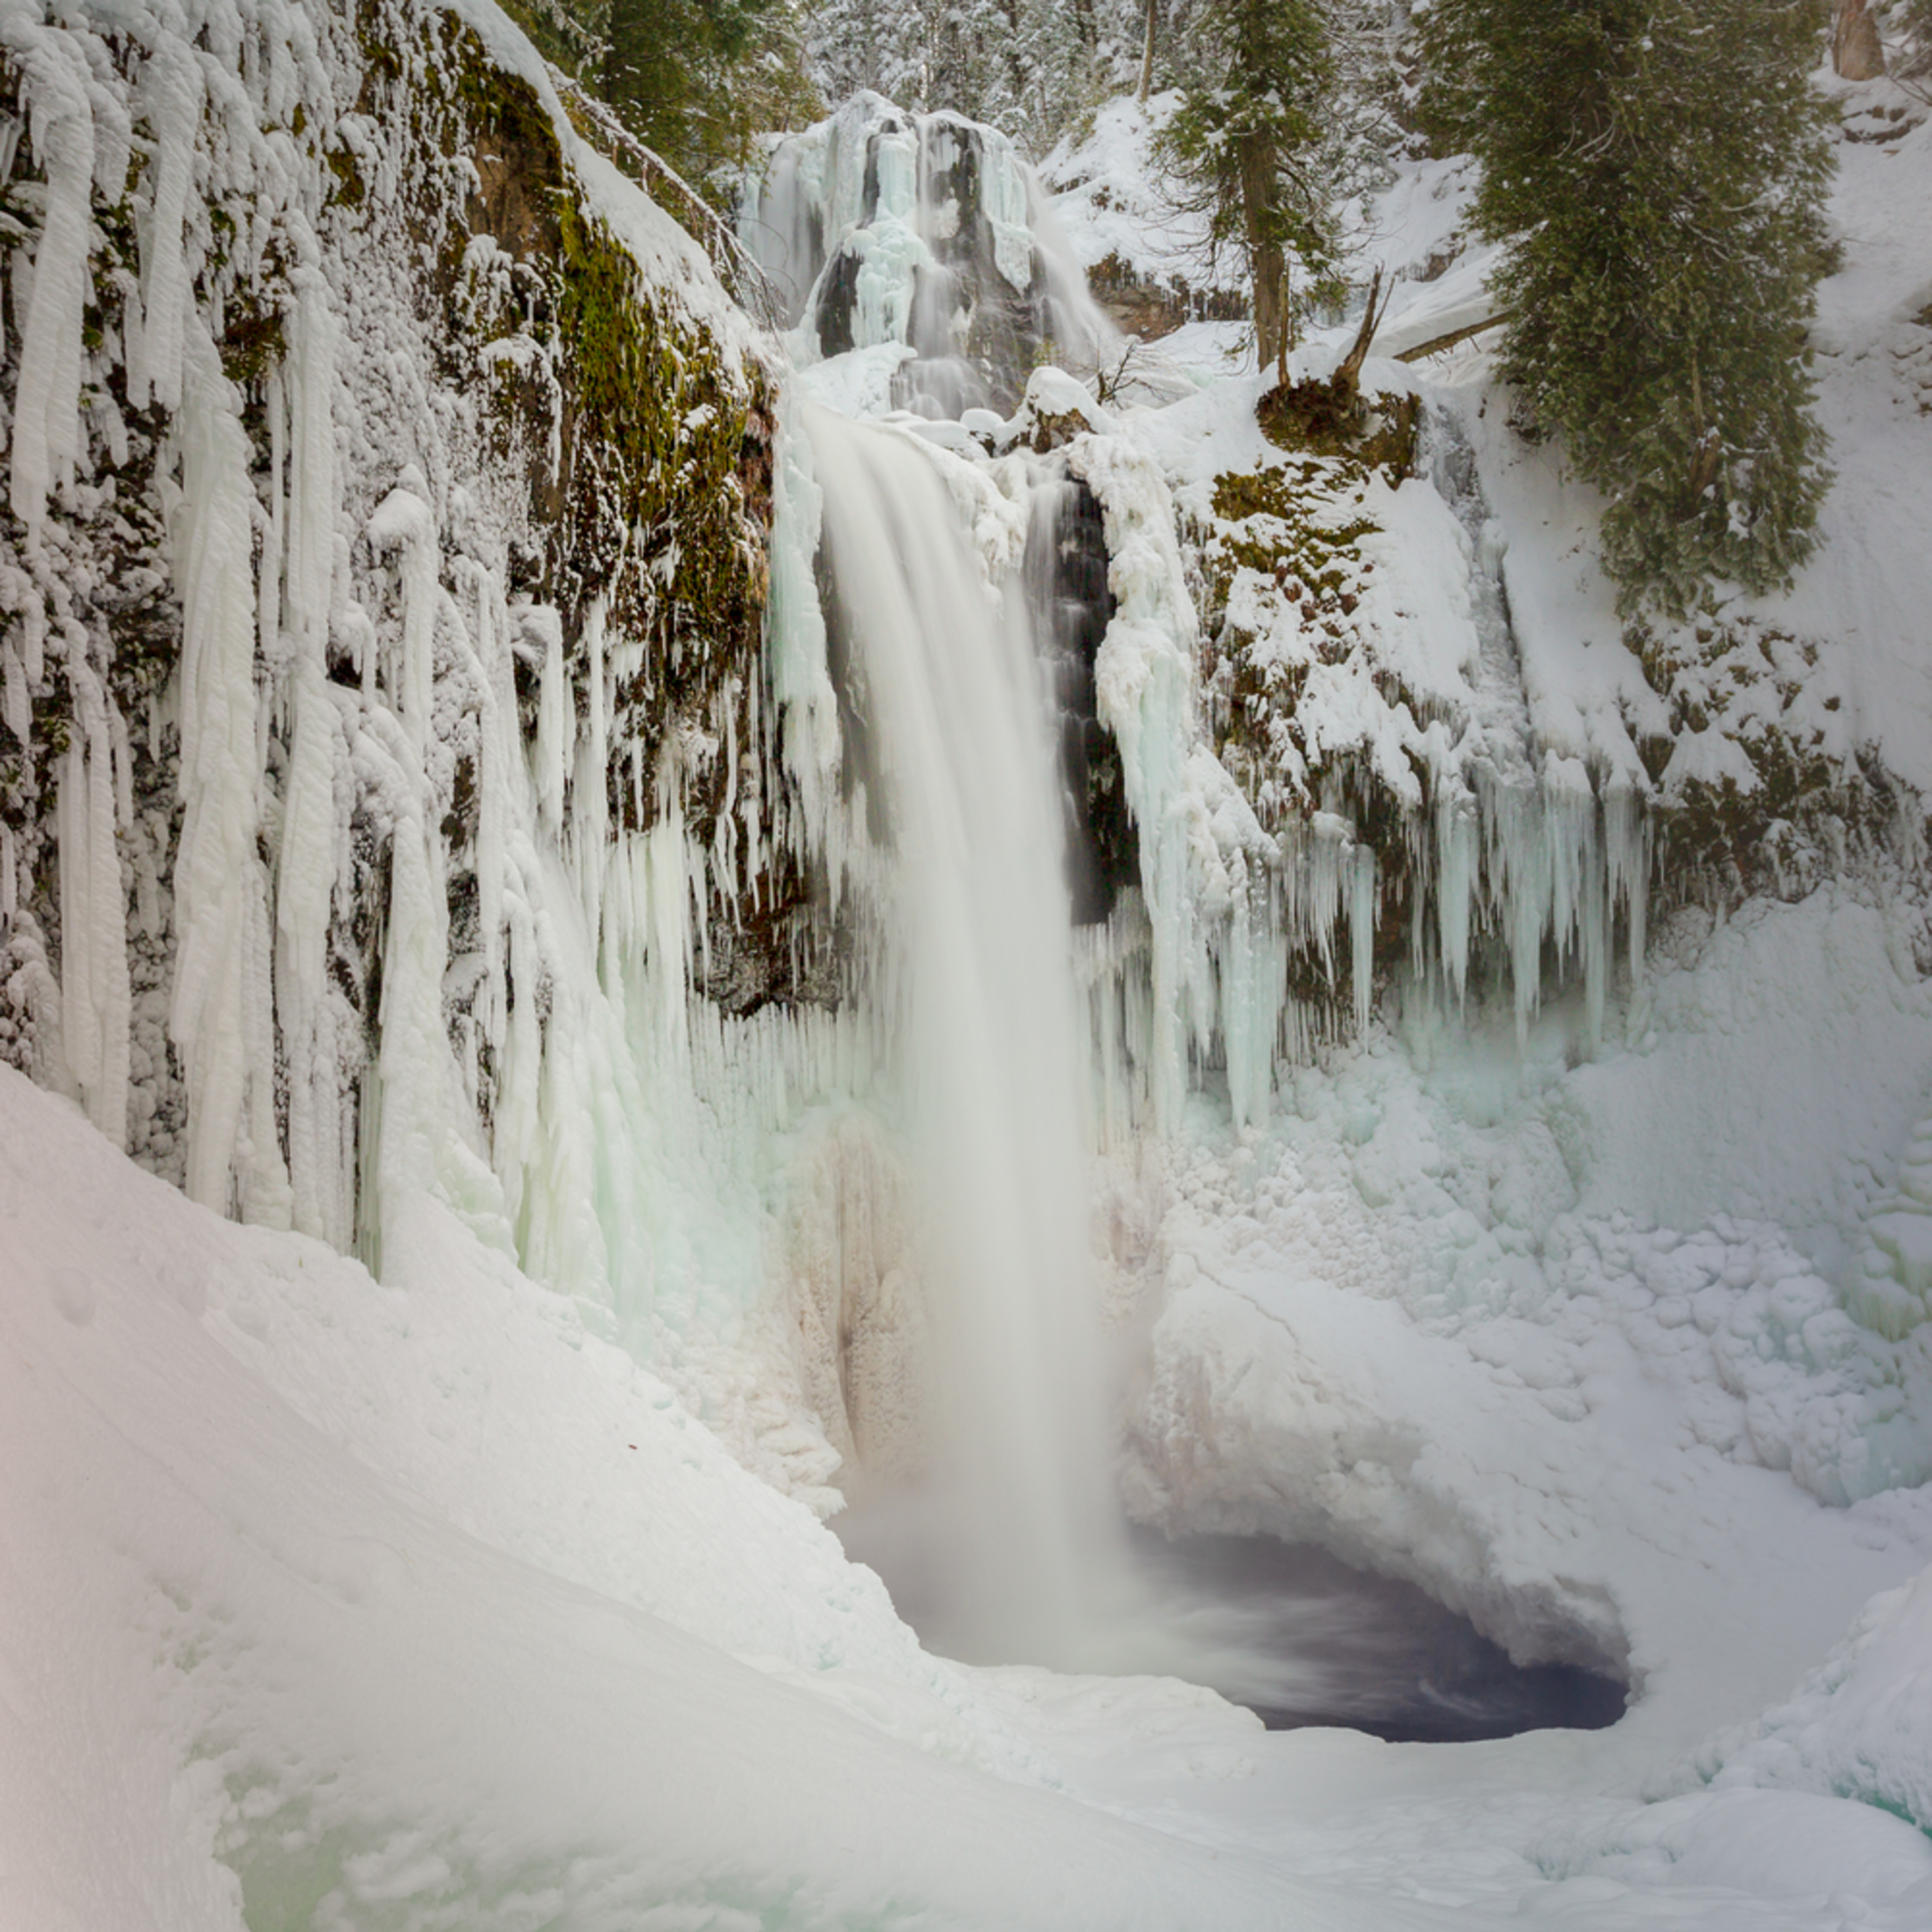 Falls creek falls ice and snow  kgphqv